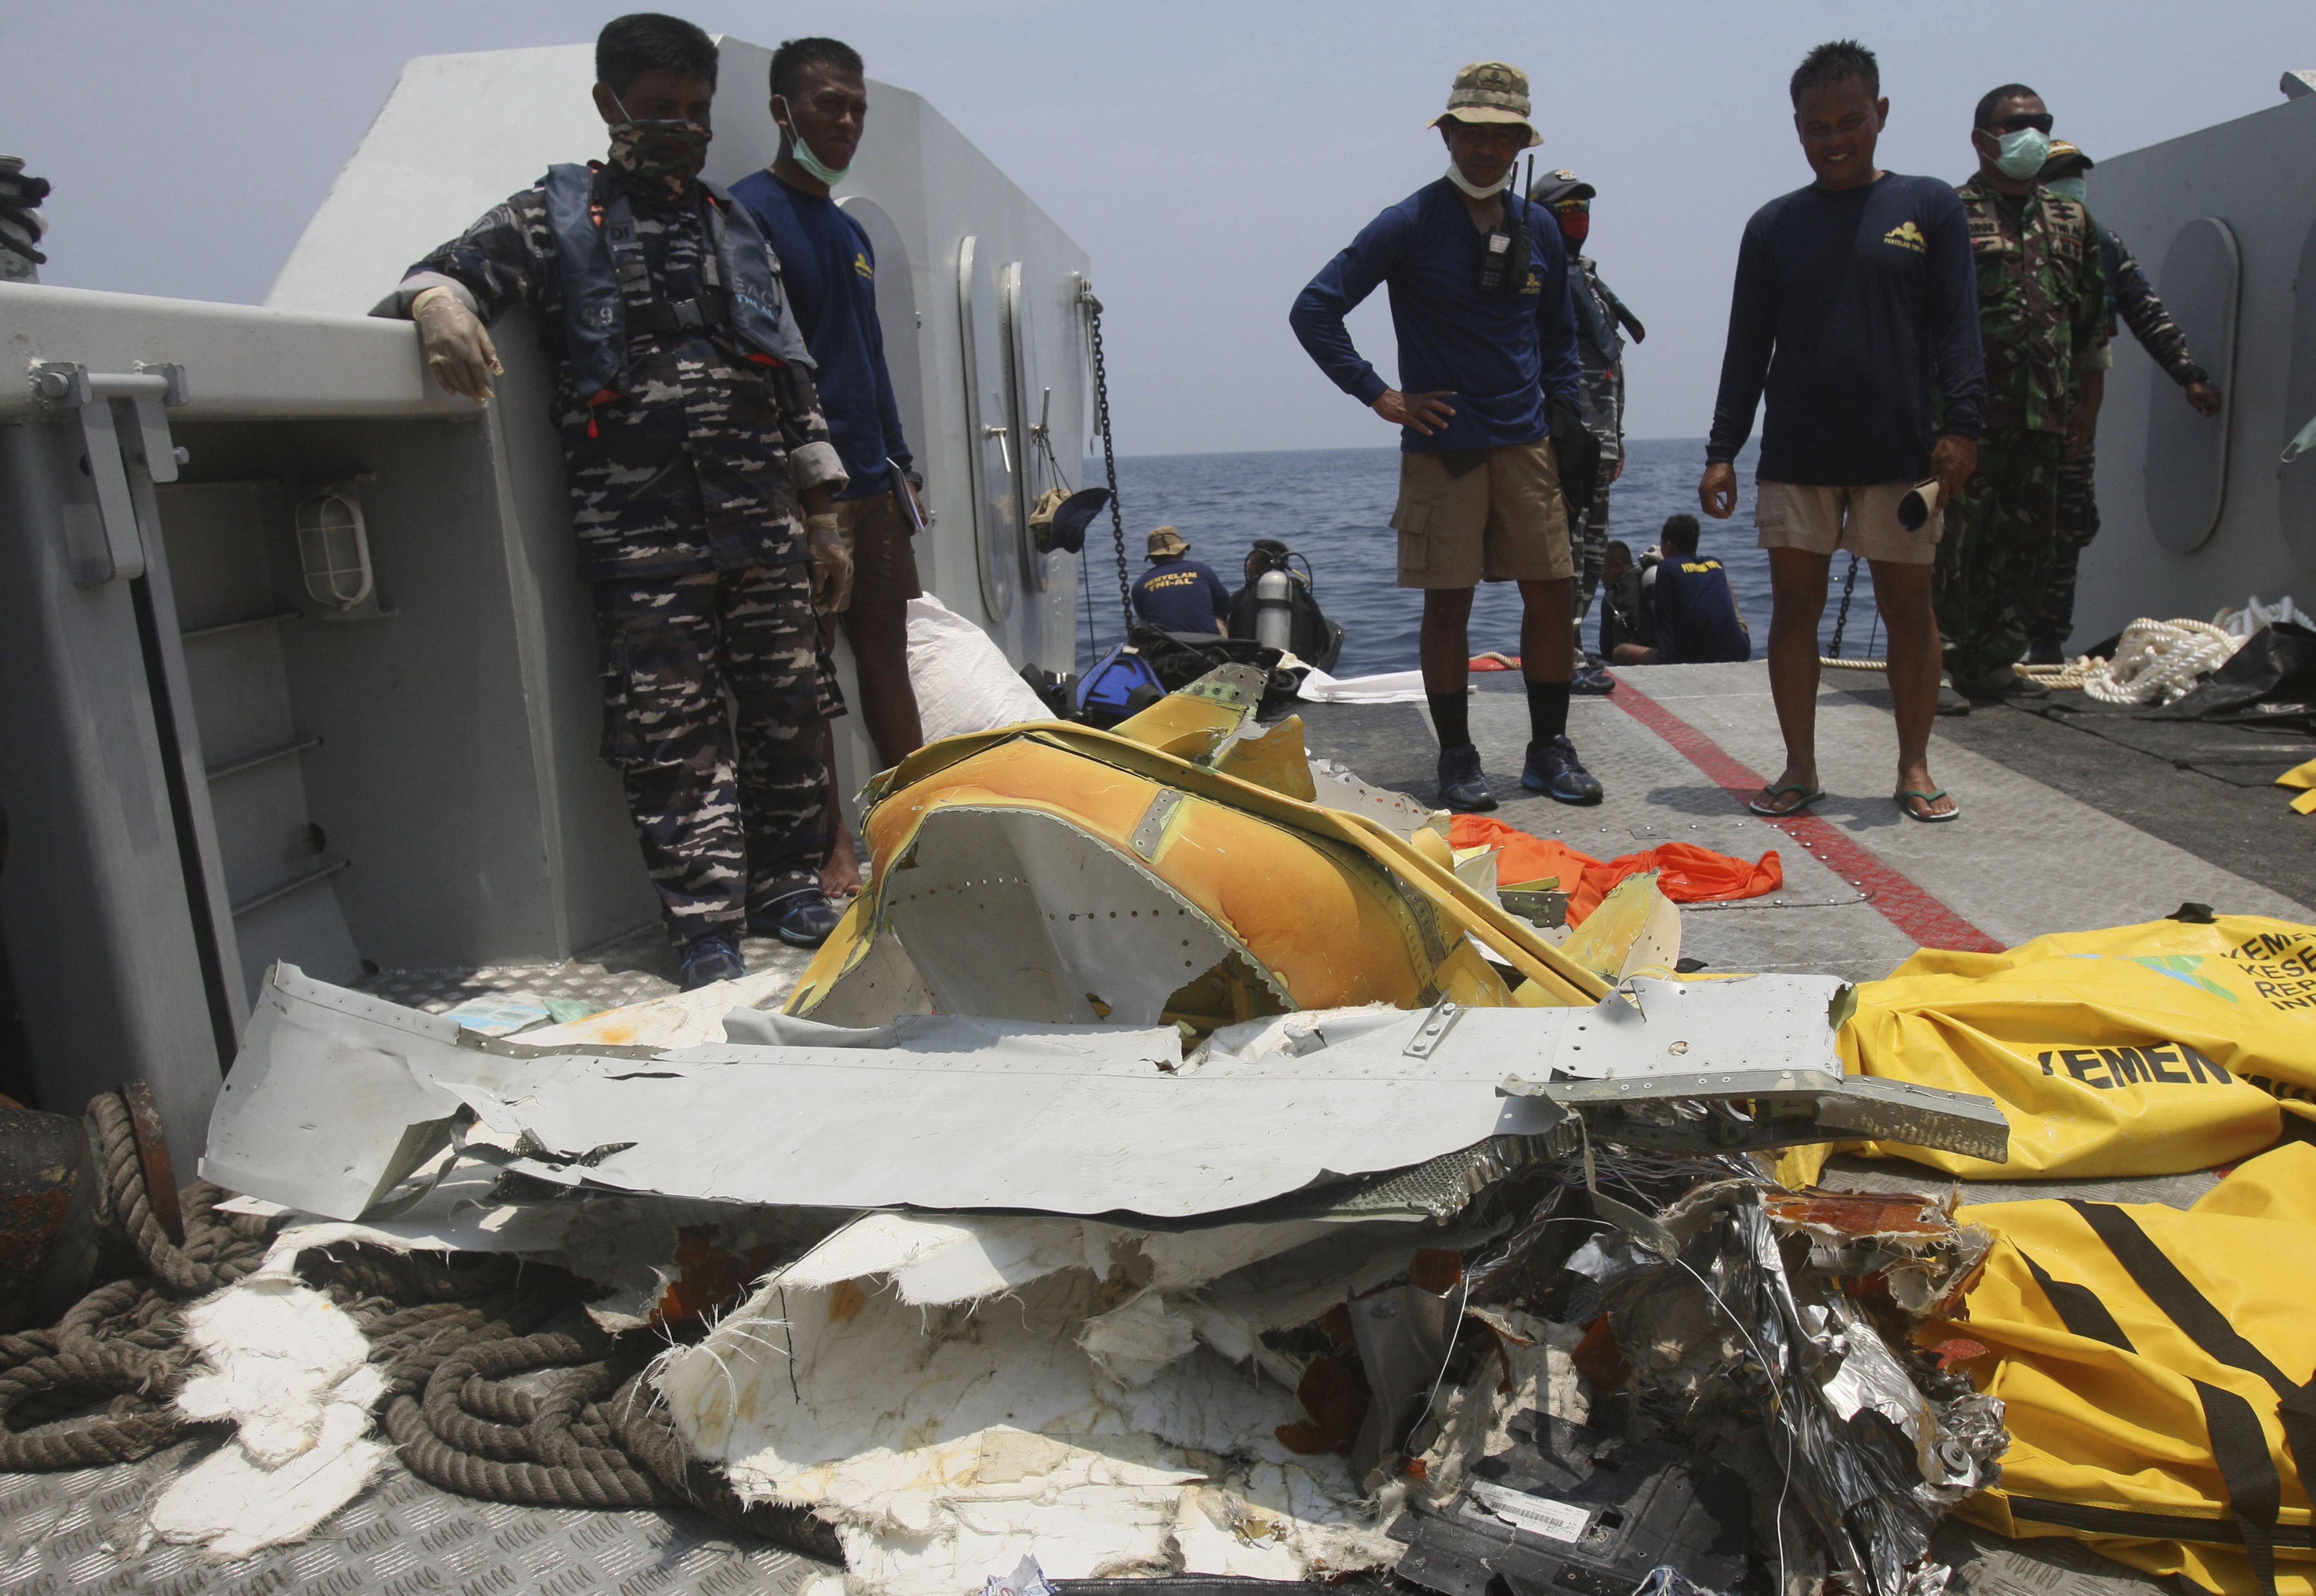 Navy divers inspect parts of the Lion Air aircraft that crashed into the sea during a search operation for the victims in the waters of Tanjung Karawang, Indonesia, Nov. 1, 2018.